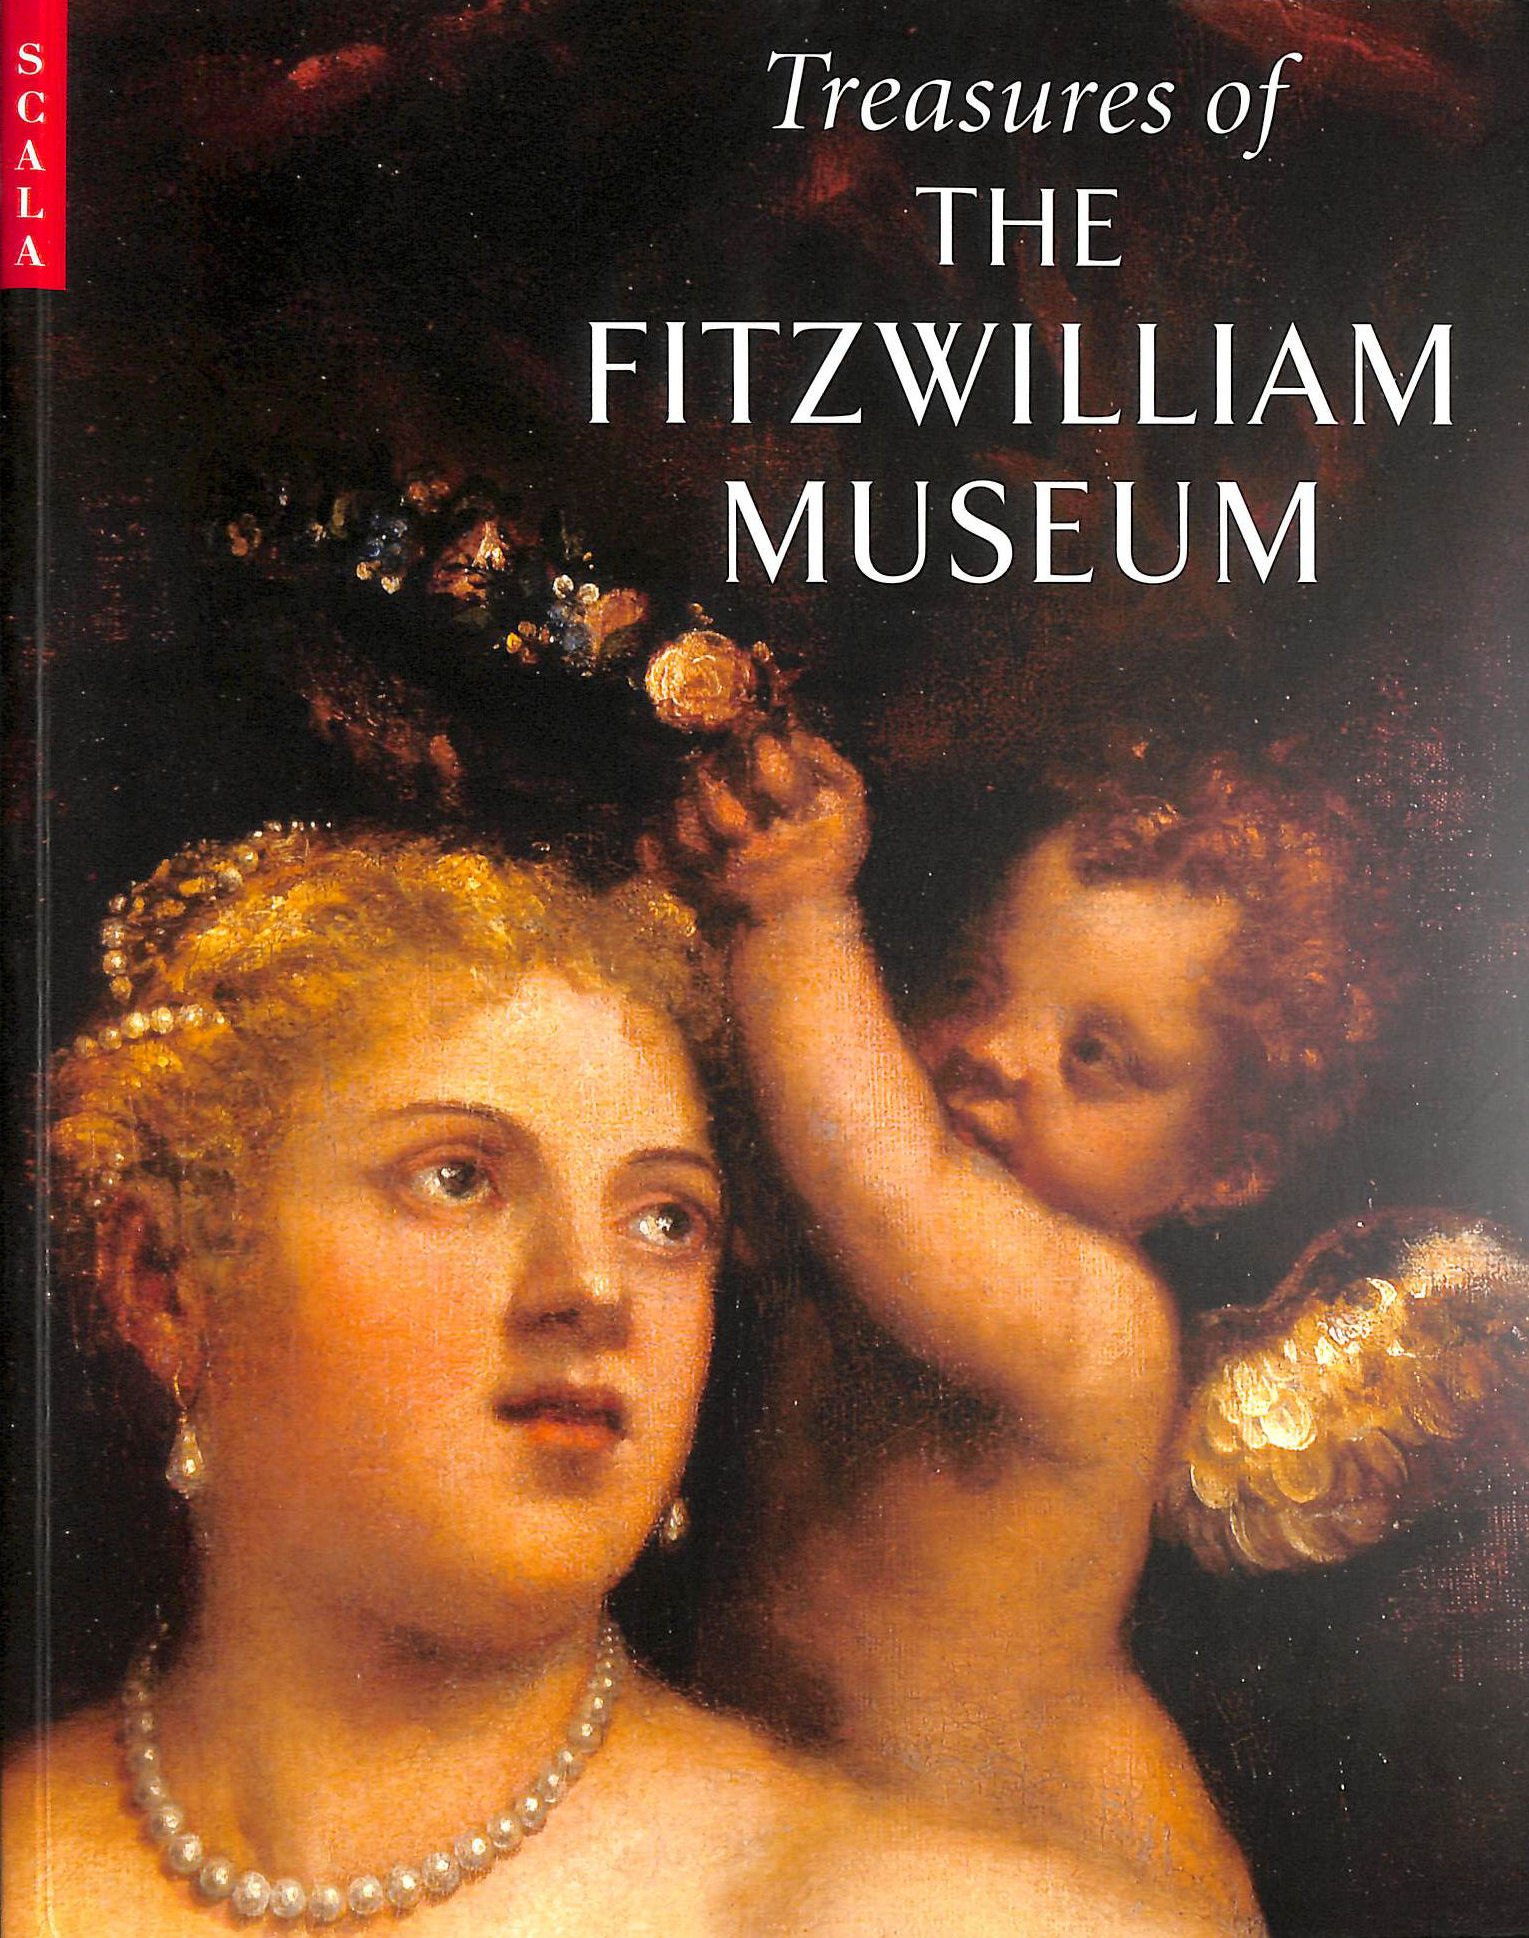 Image for Treasures of the Fitzwilliam Museum (Art)